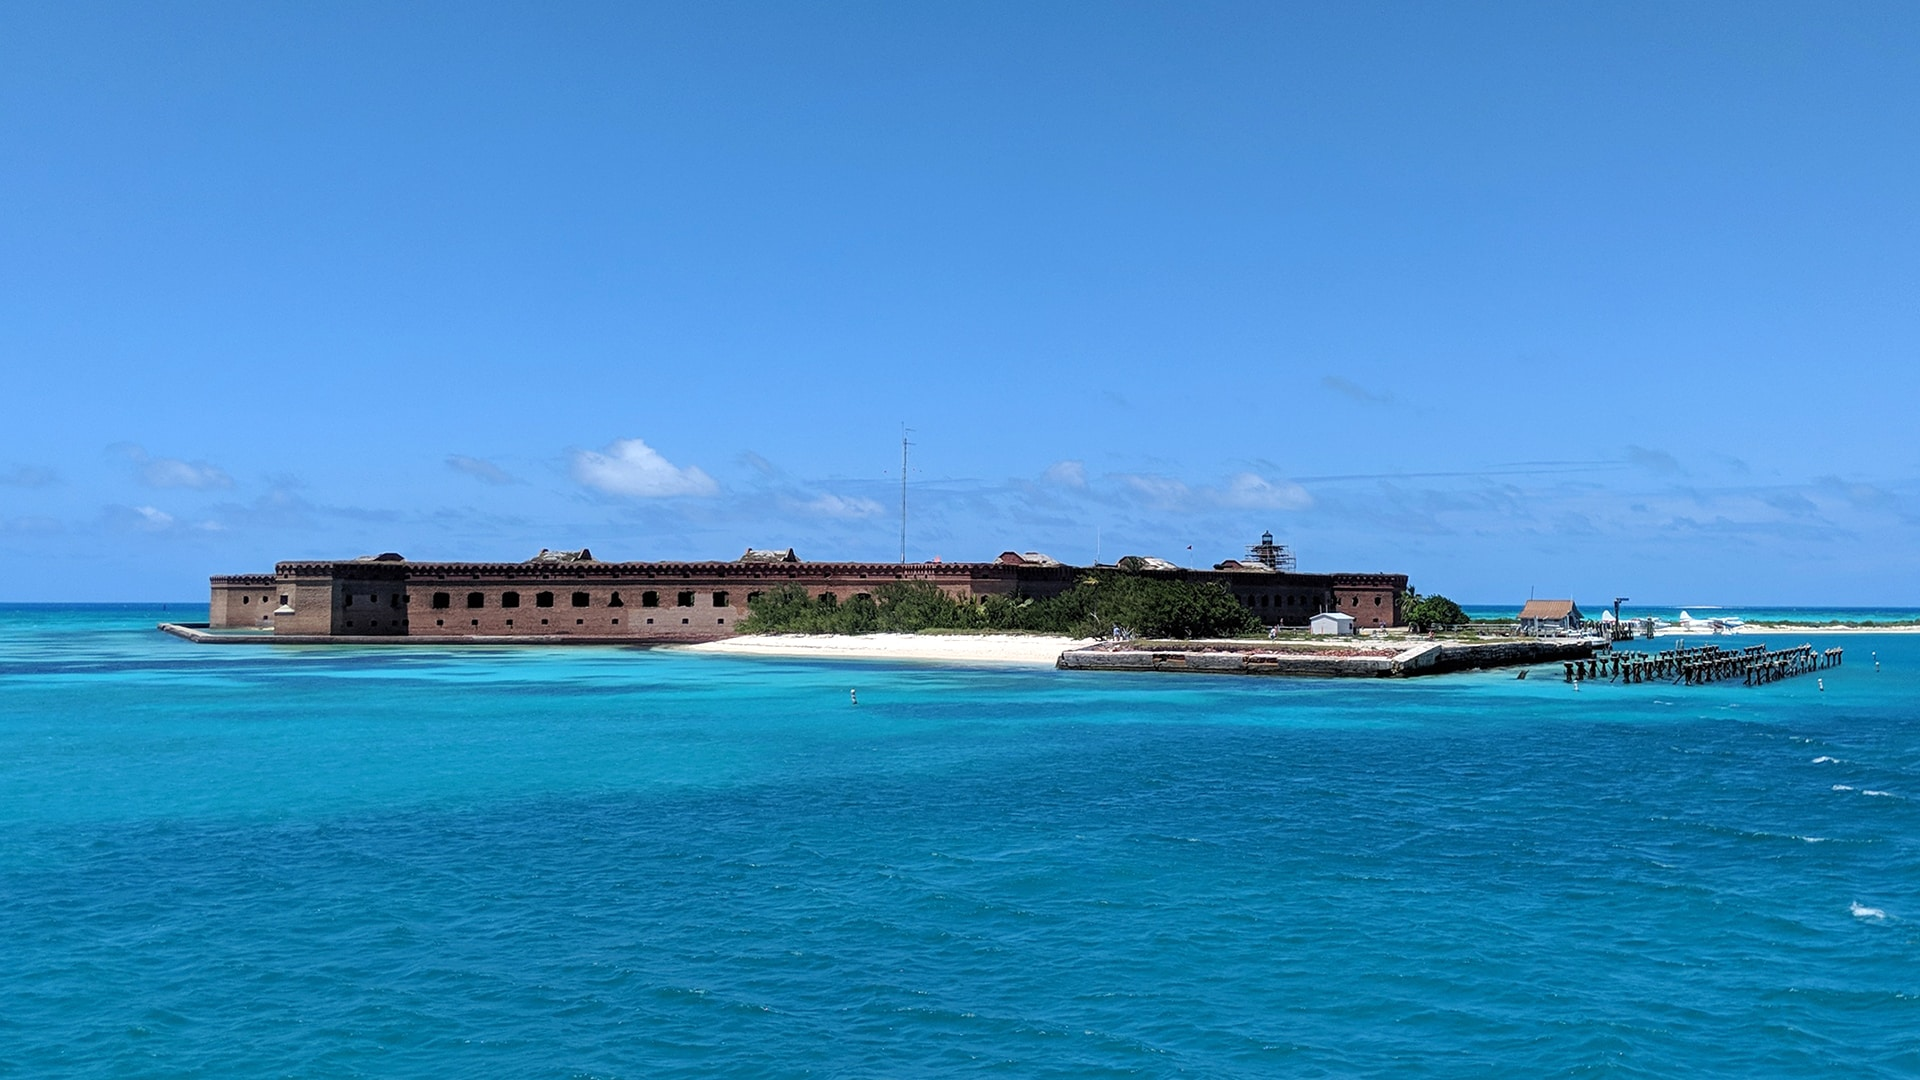 Dry Tortugas National Park includes Fort Jefferson, once used as a prison.